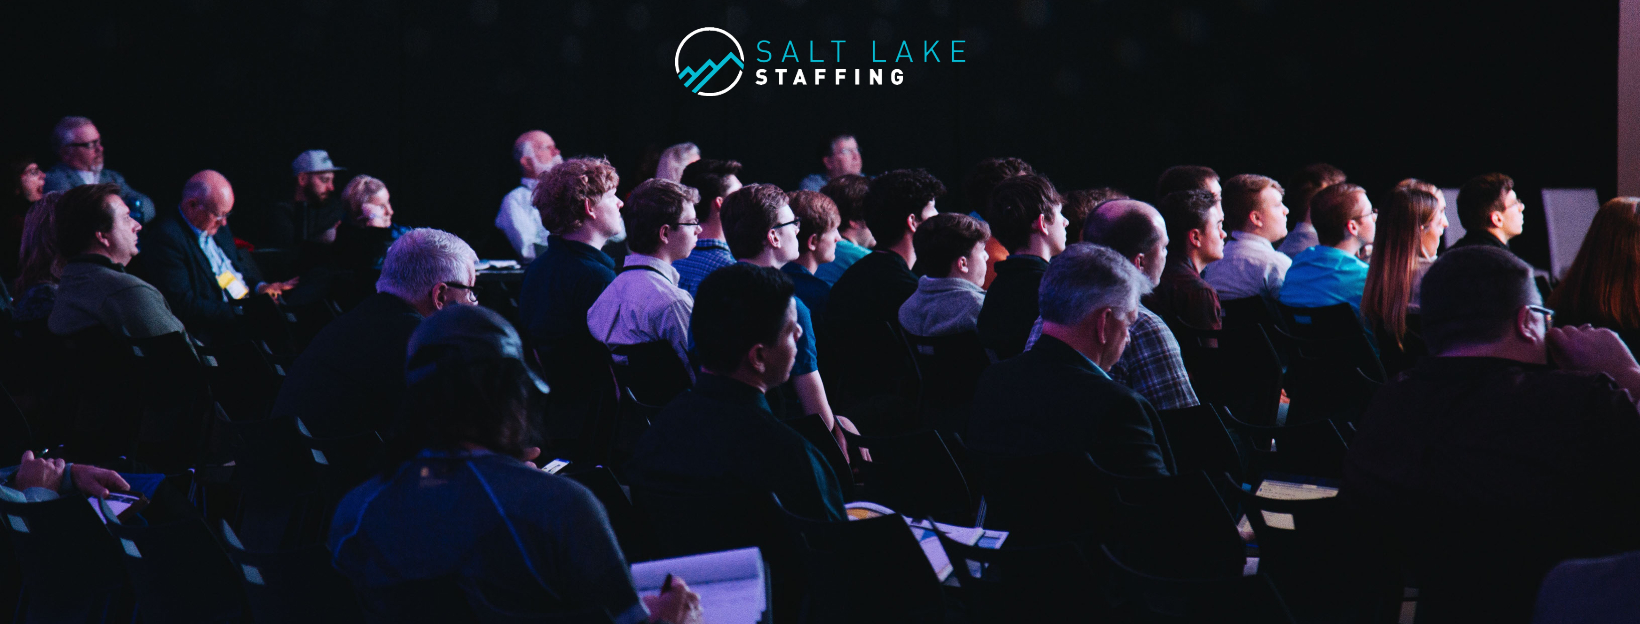 You're Registered for your First Industry Conference, Now What?